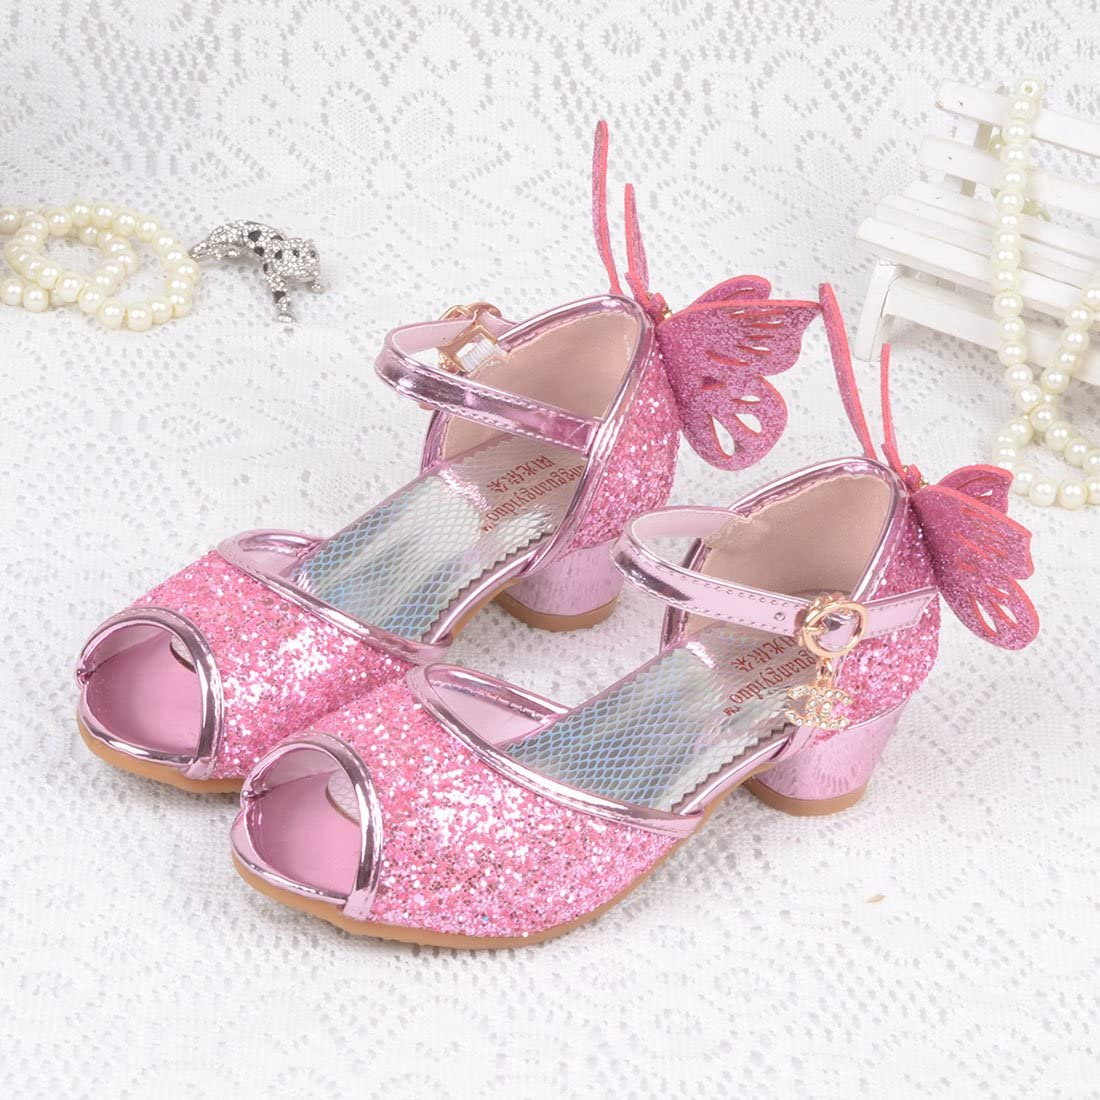 JTENGYAO Child Baby Girls Princess Shoes Glitter Dance Shoes Buckle Strap